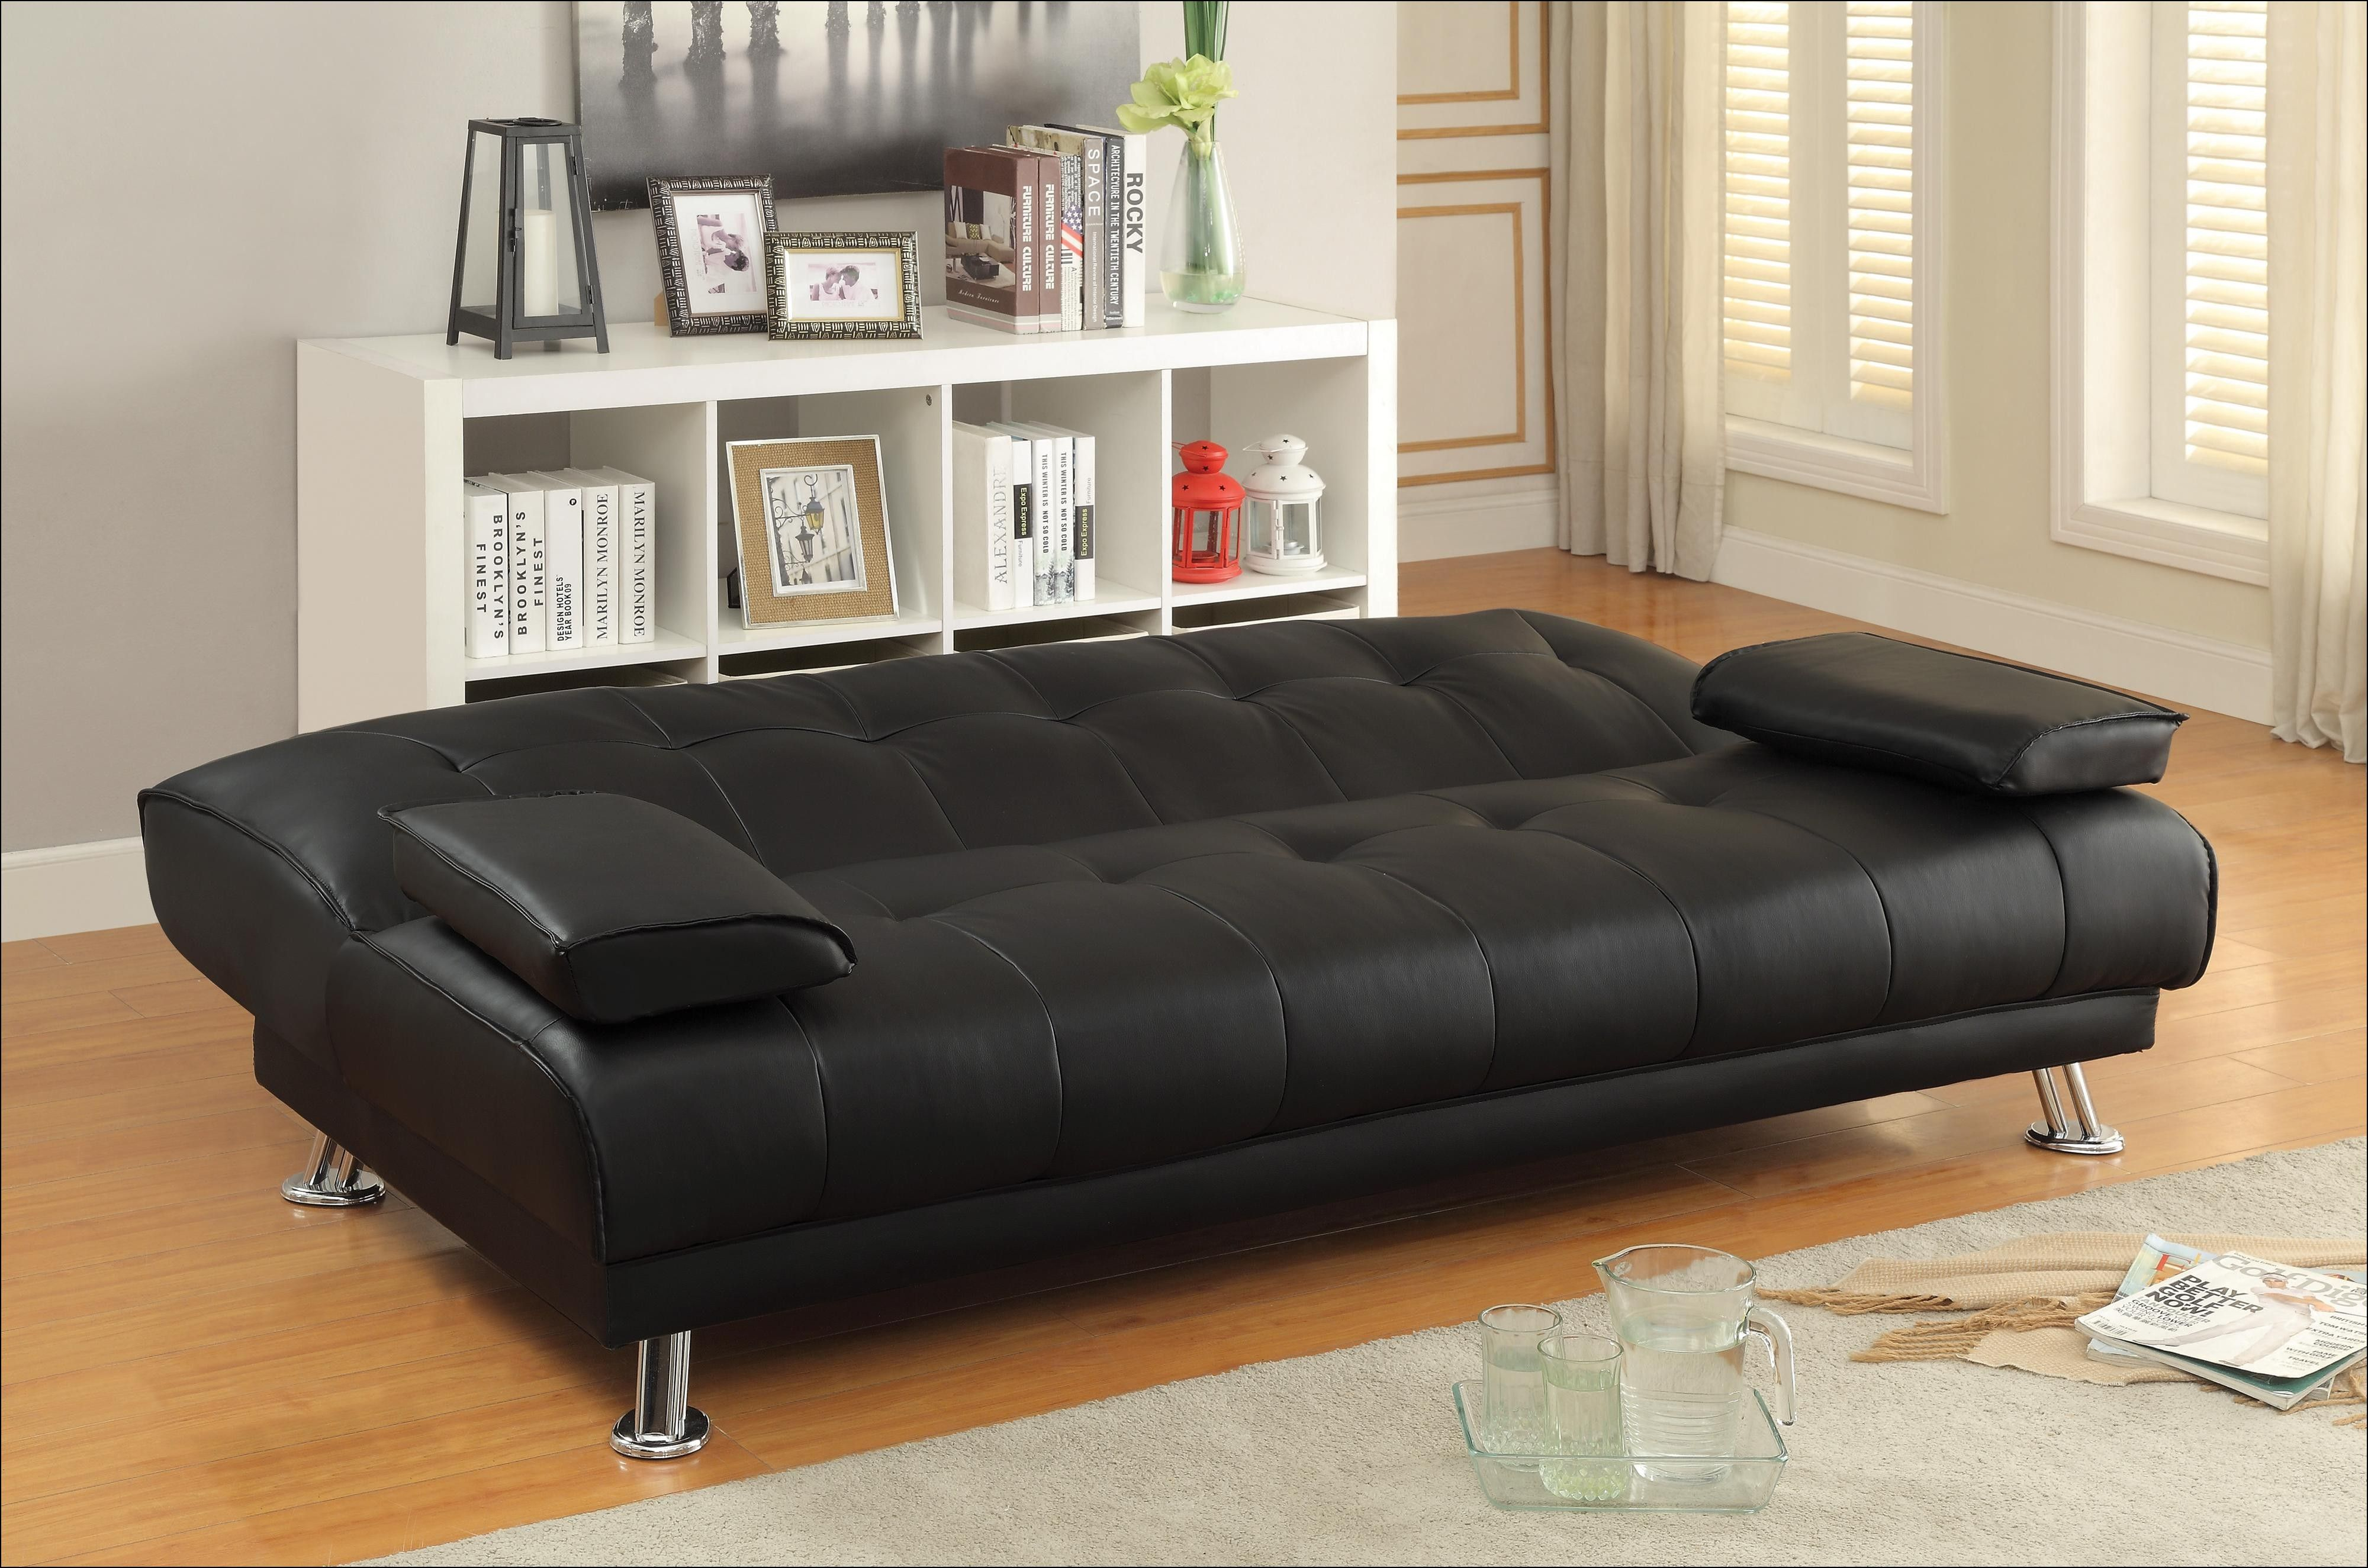 futon couch for sale couch sofa gallery pinterest futon rh pinterest com